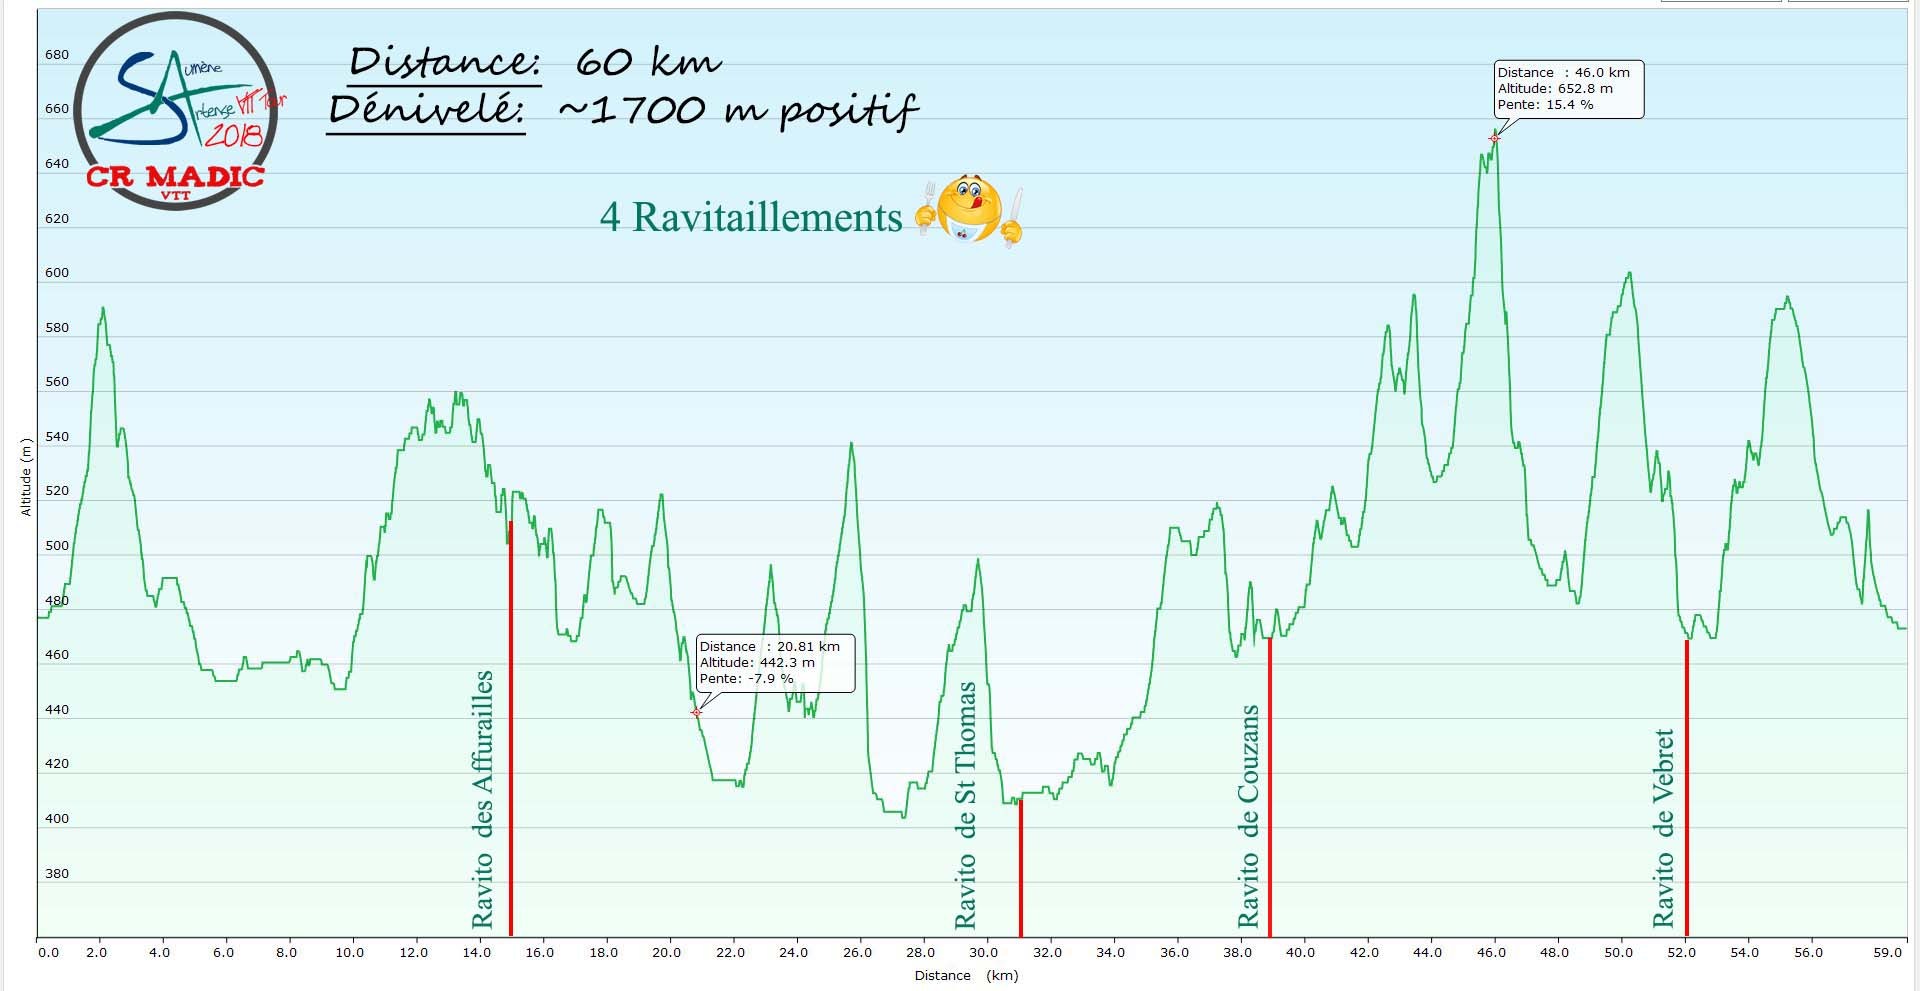 2018 savtt tour 60 km denivele